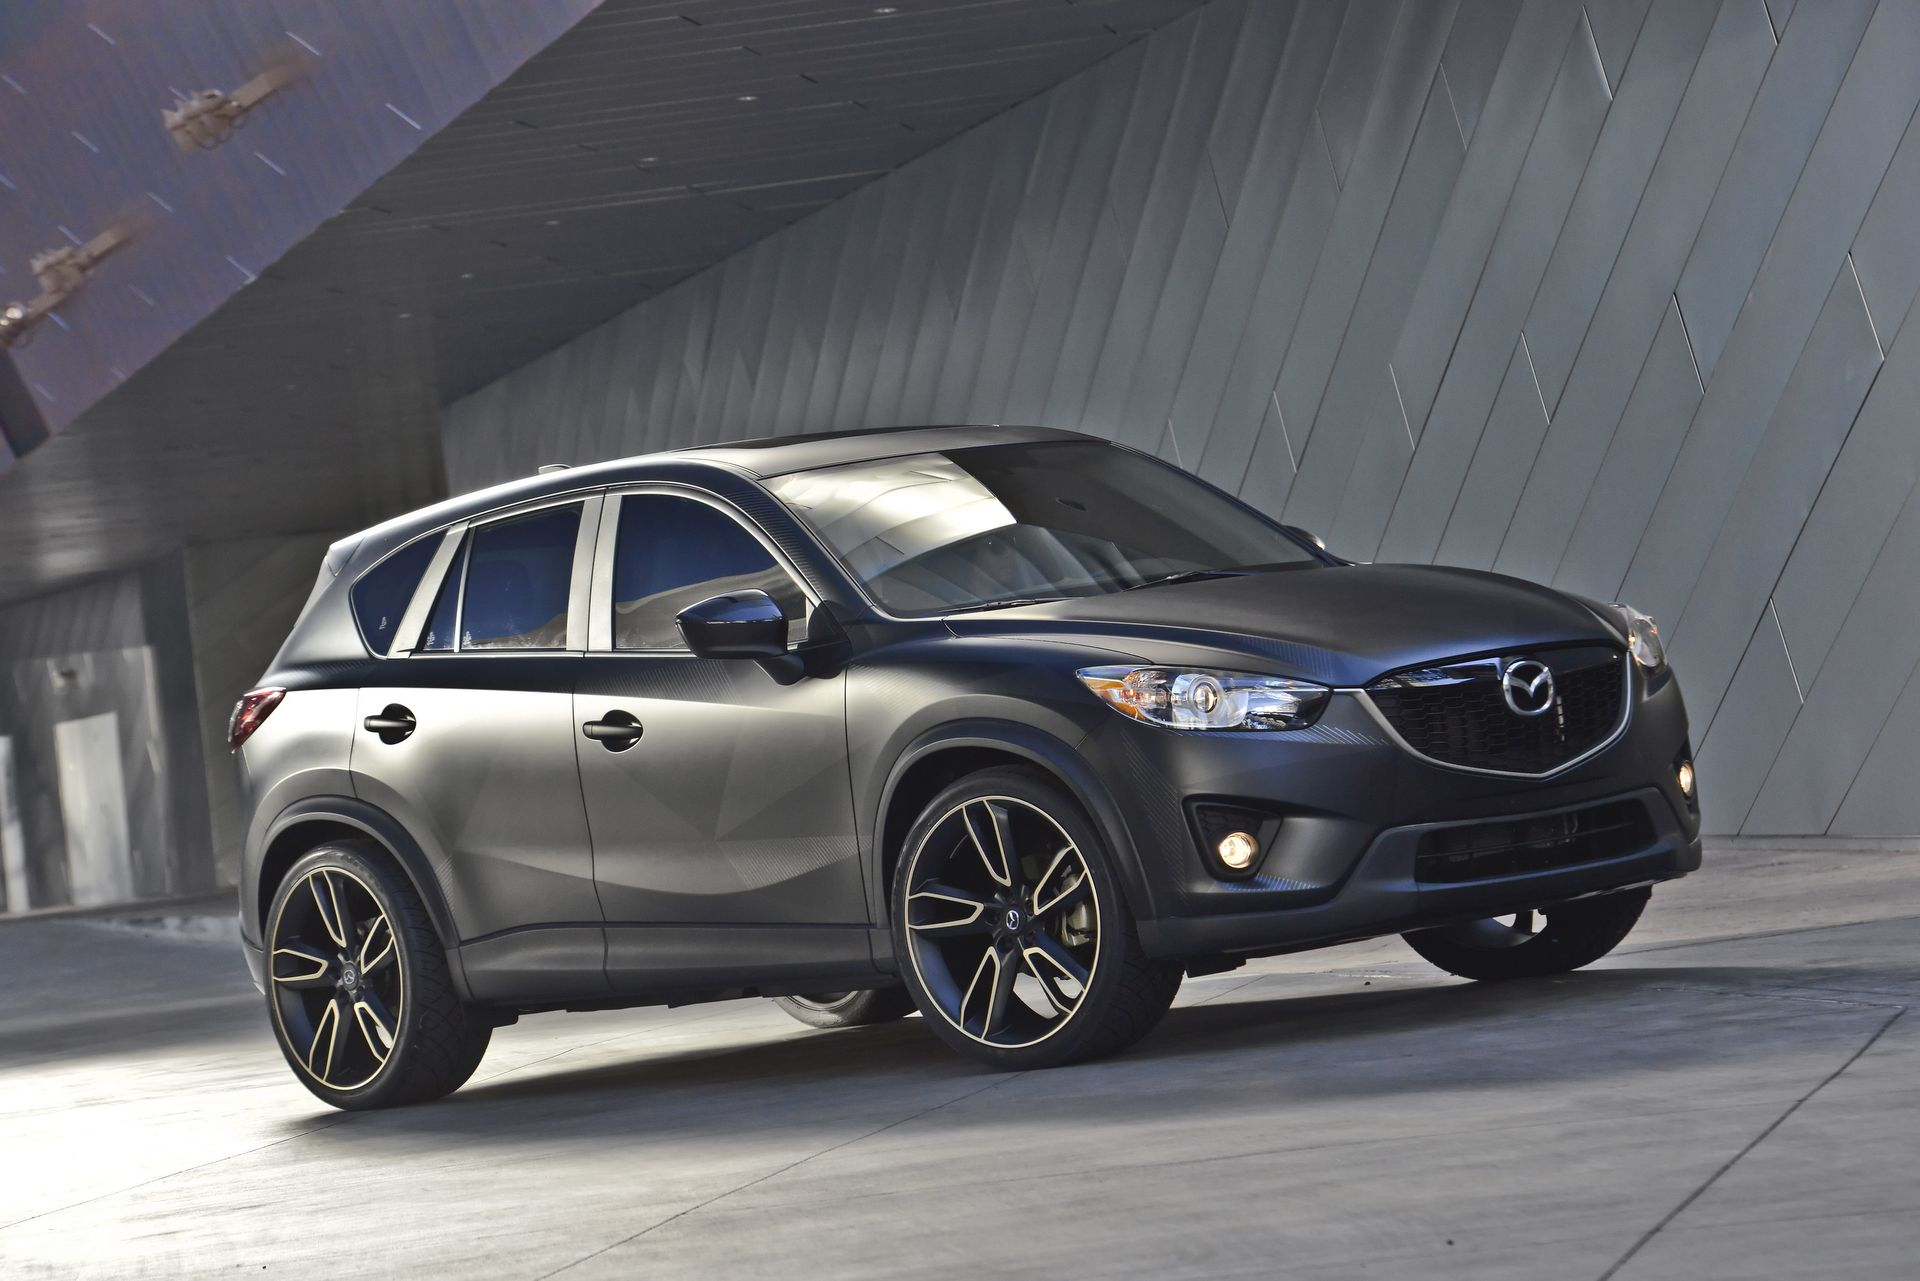 Mazda Cx 5 2010 Review Amazing Pictures And Images Look At The Car